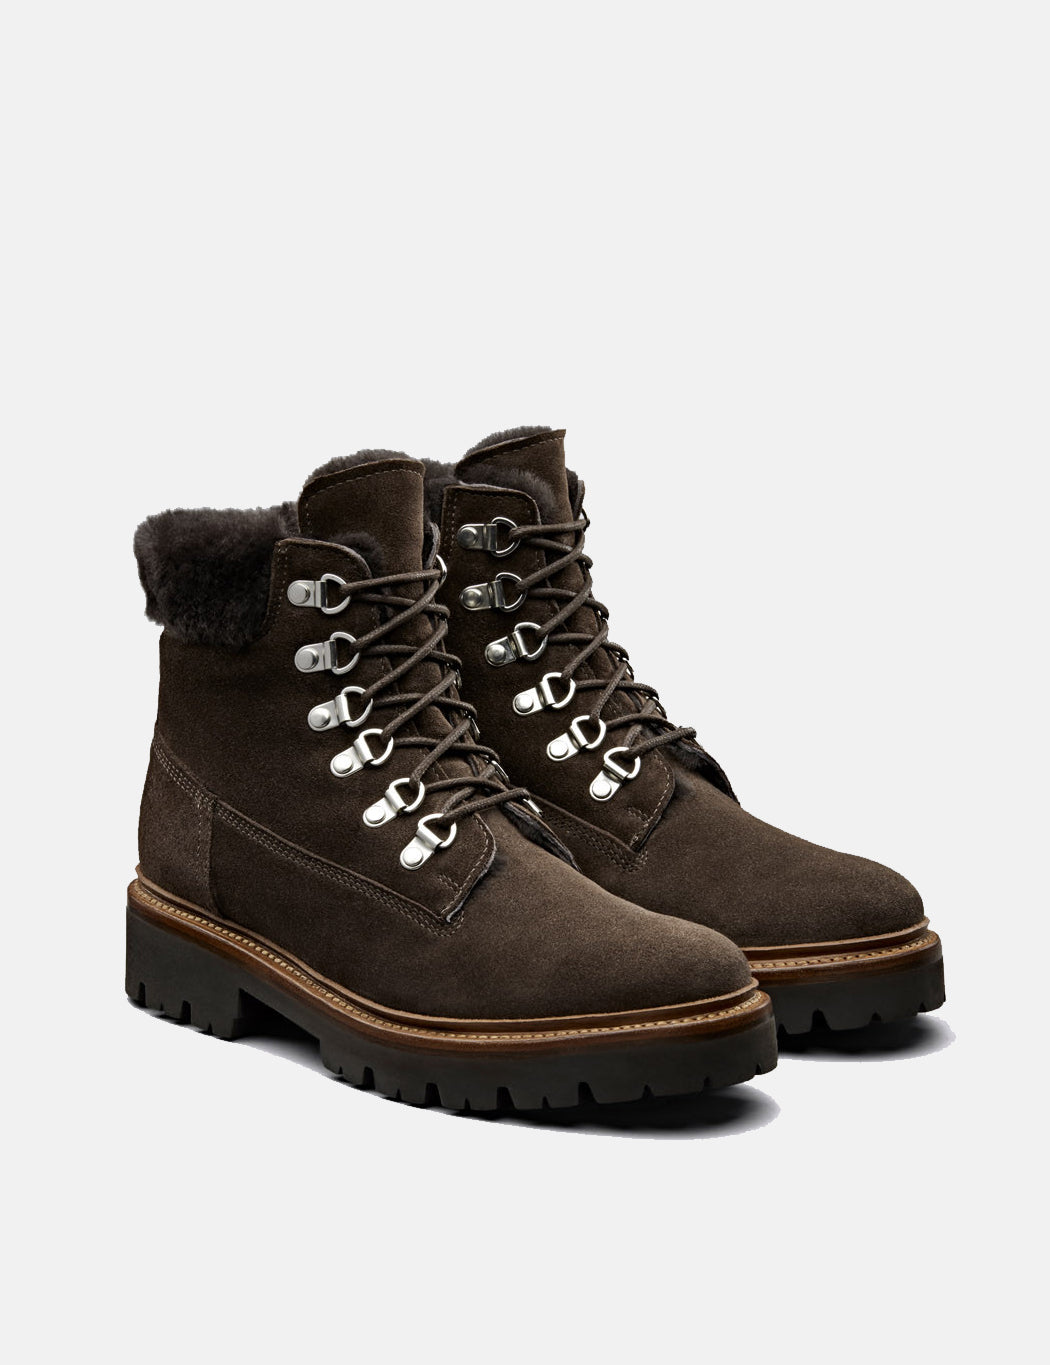 Womens Grenson Brooke Derby Hiker Boot (Suede) - Peat | URBAN EXCESS.